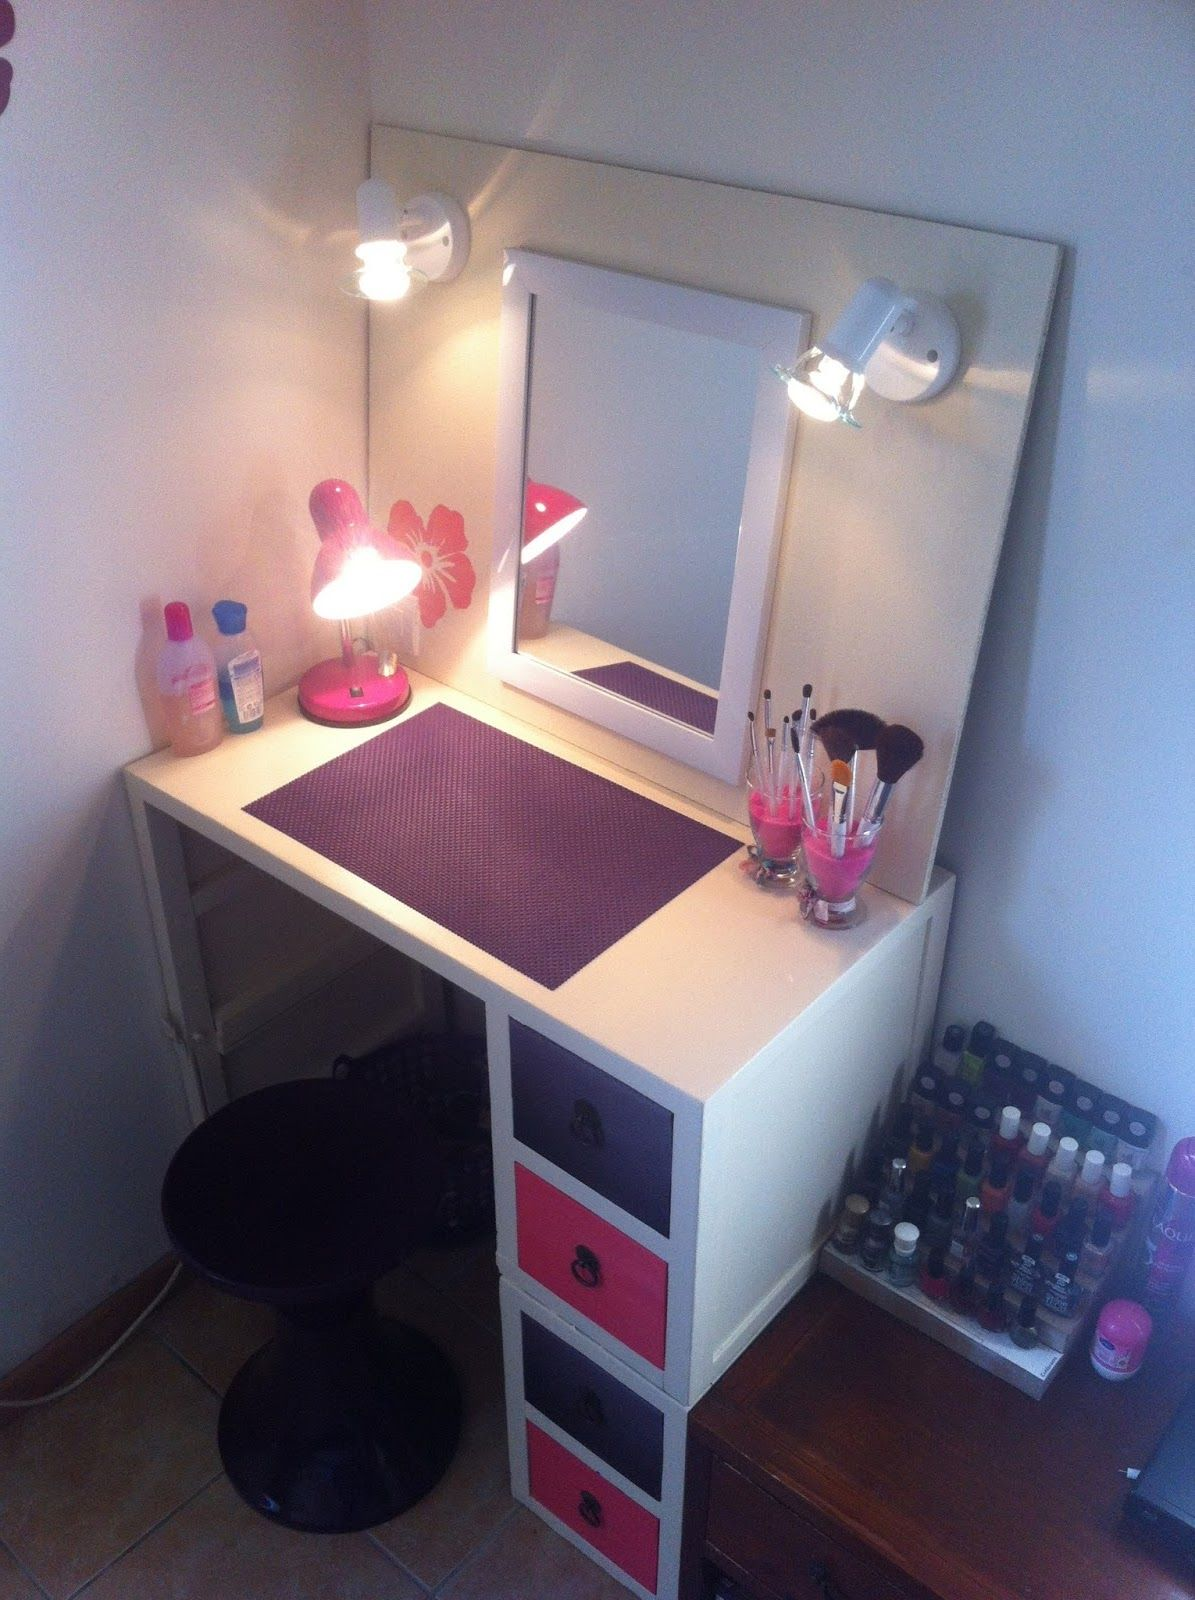 Coiffeuse Idees De Coiffeuse Idee Deco Chambre Coiffeuses